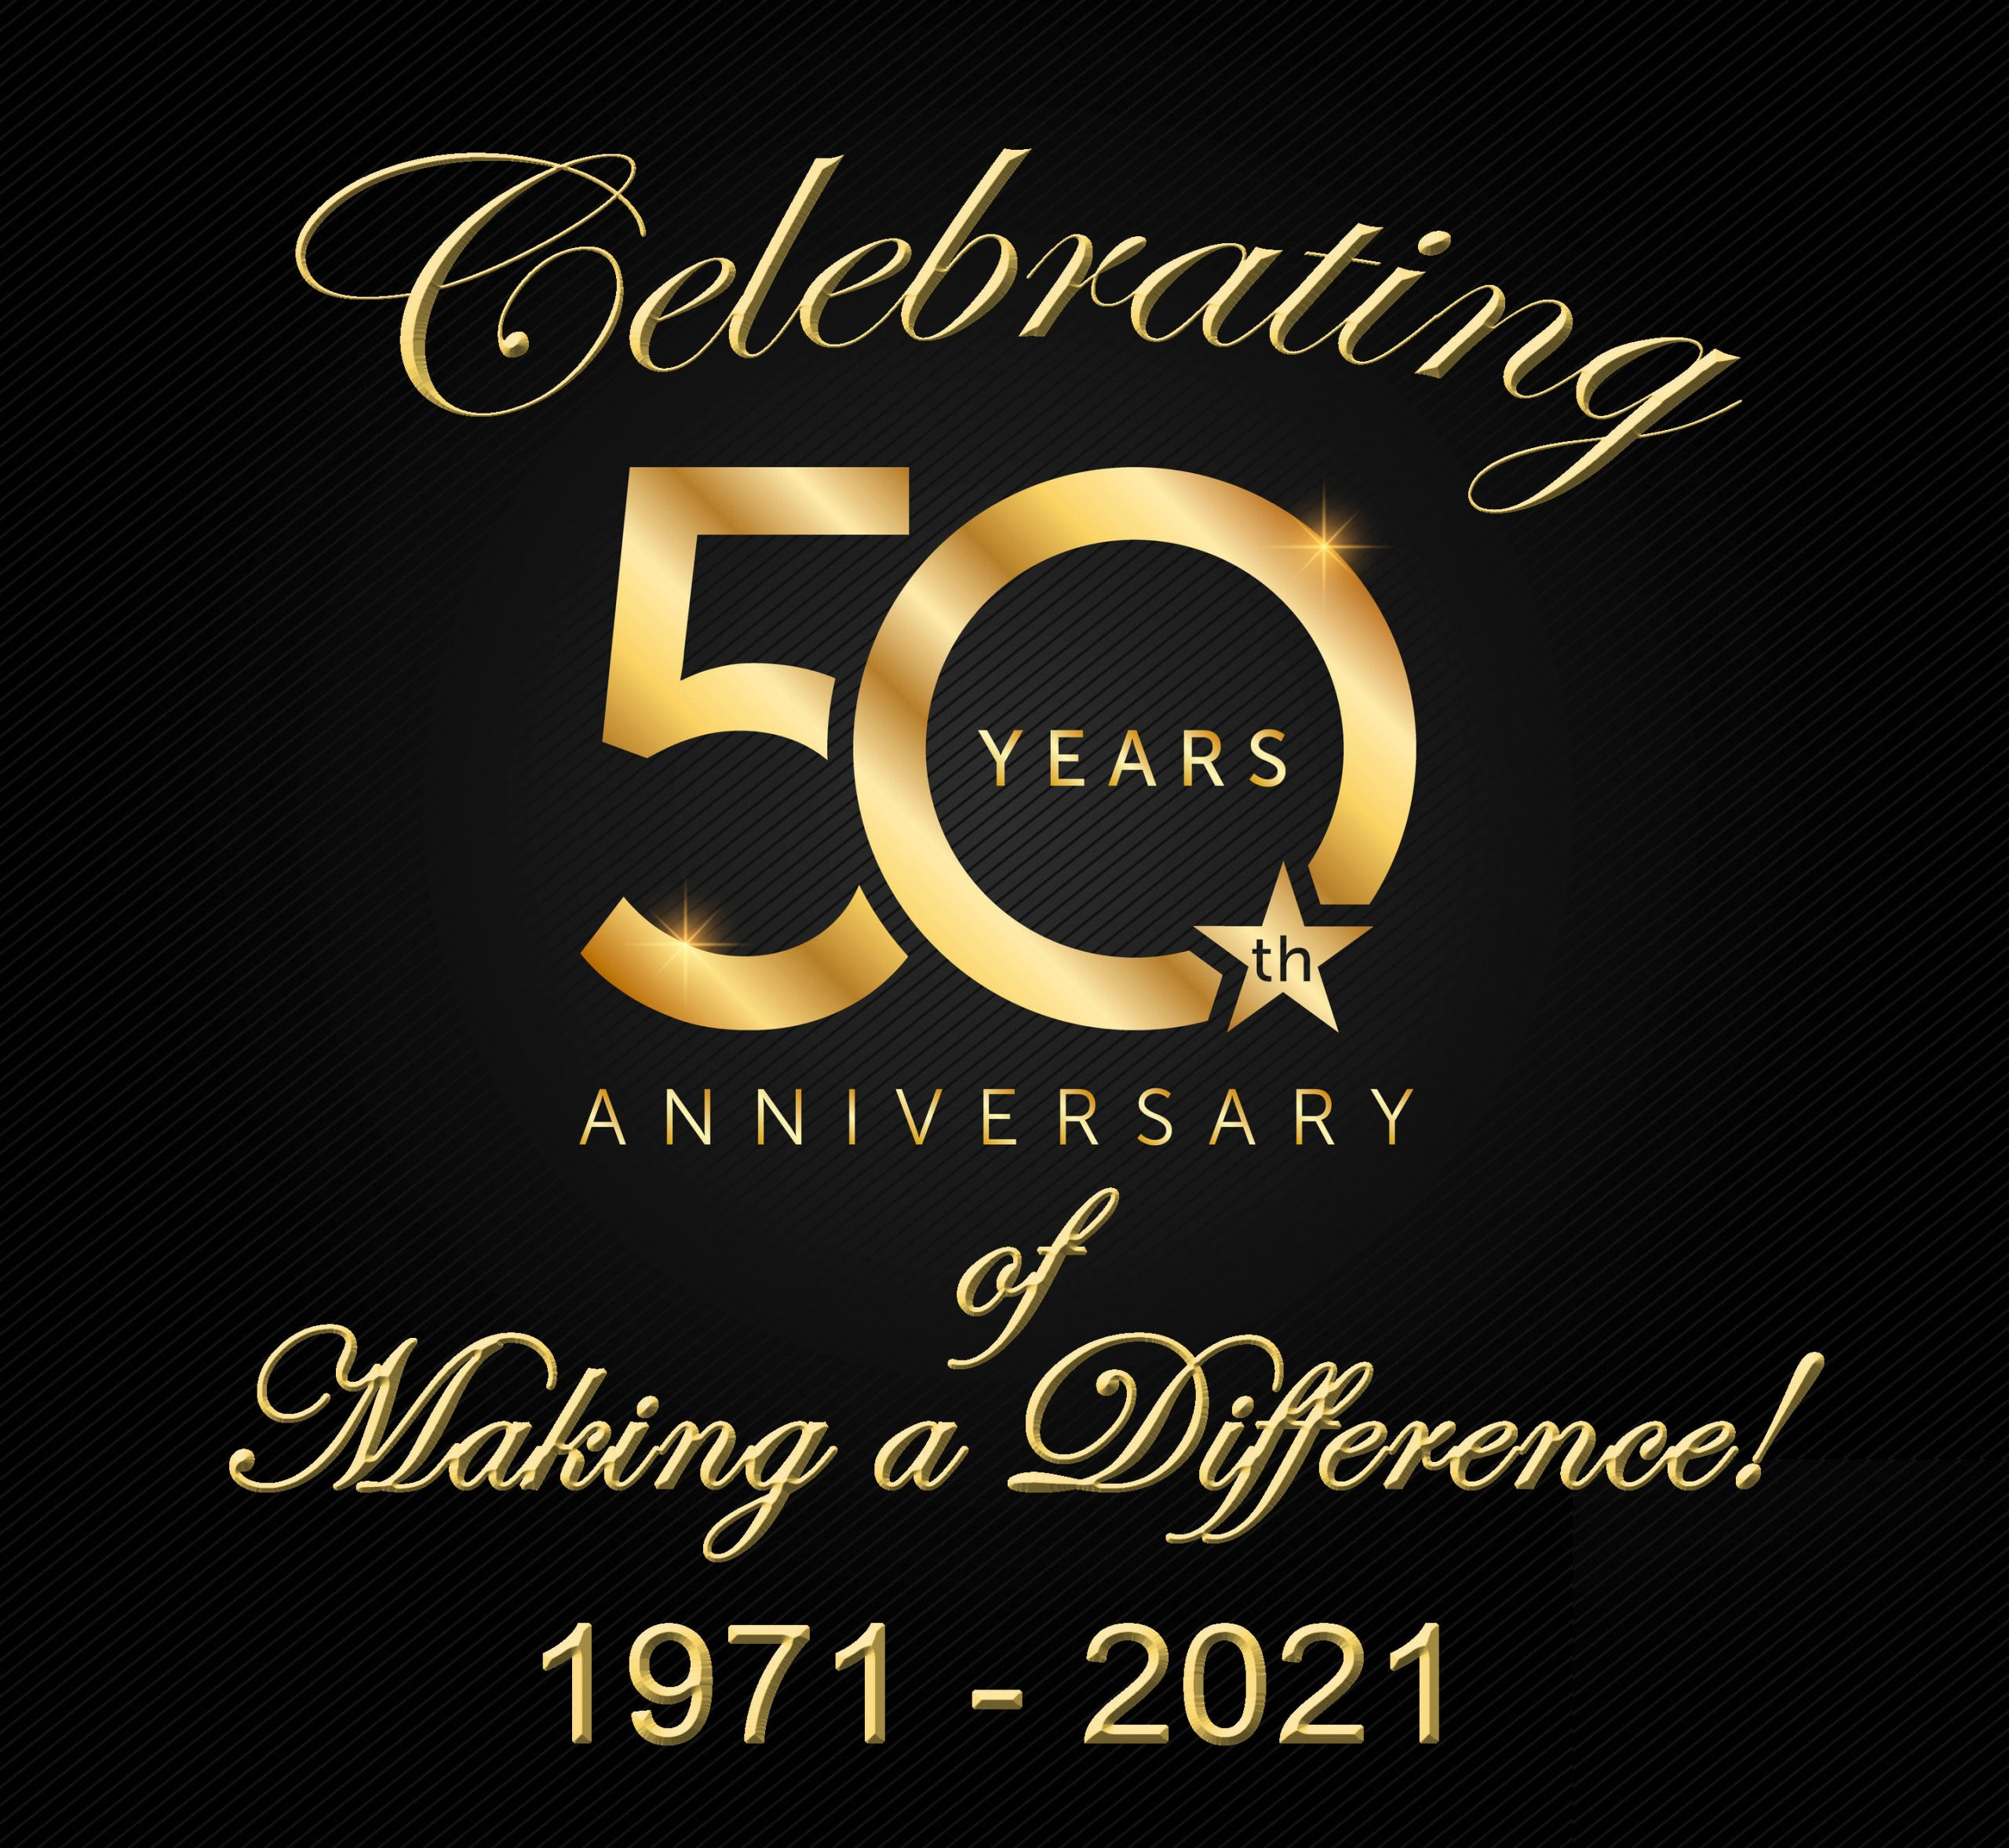 Kindervelt's 50th Jubilee – Celebrating 50 Years Of Making A Difference